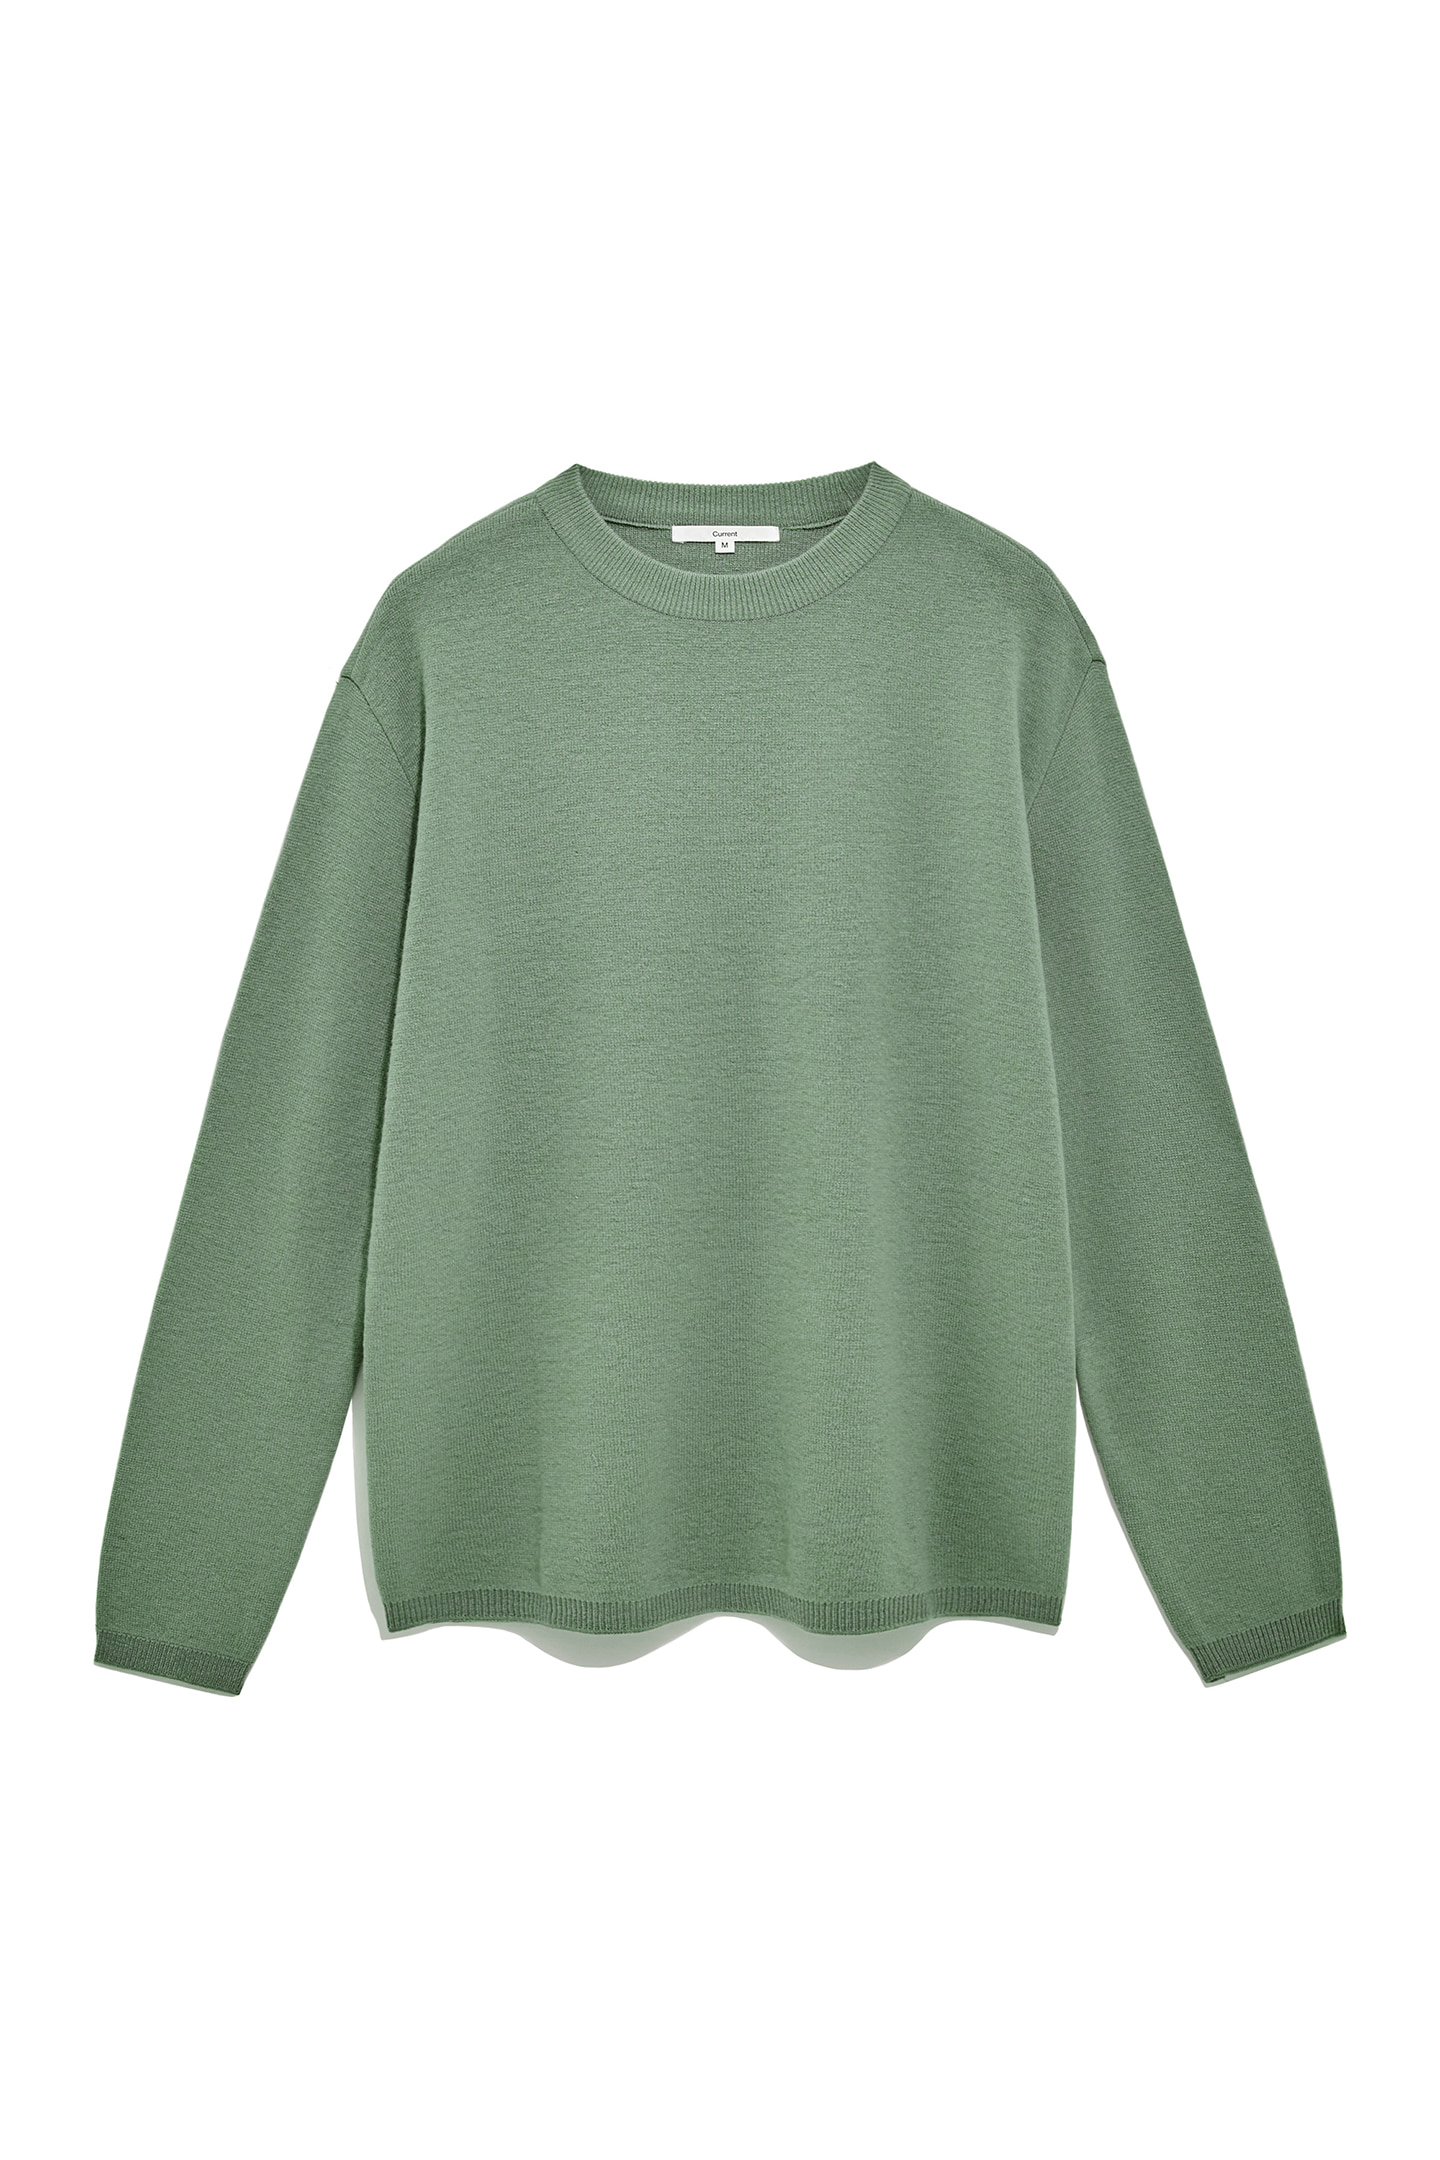 Premium Cash Knit [Mint]